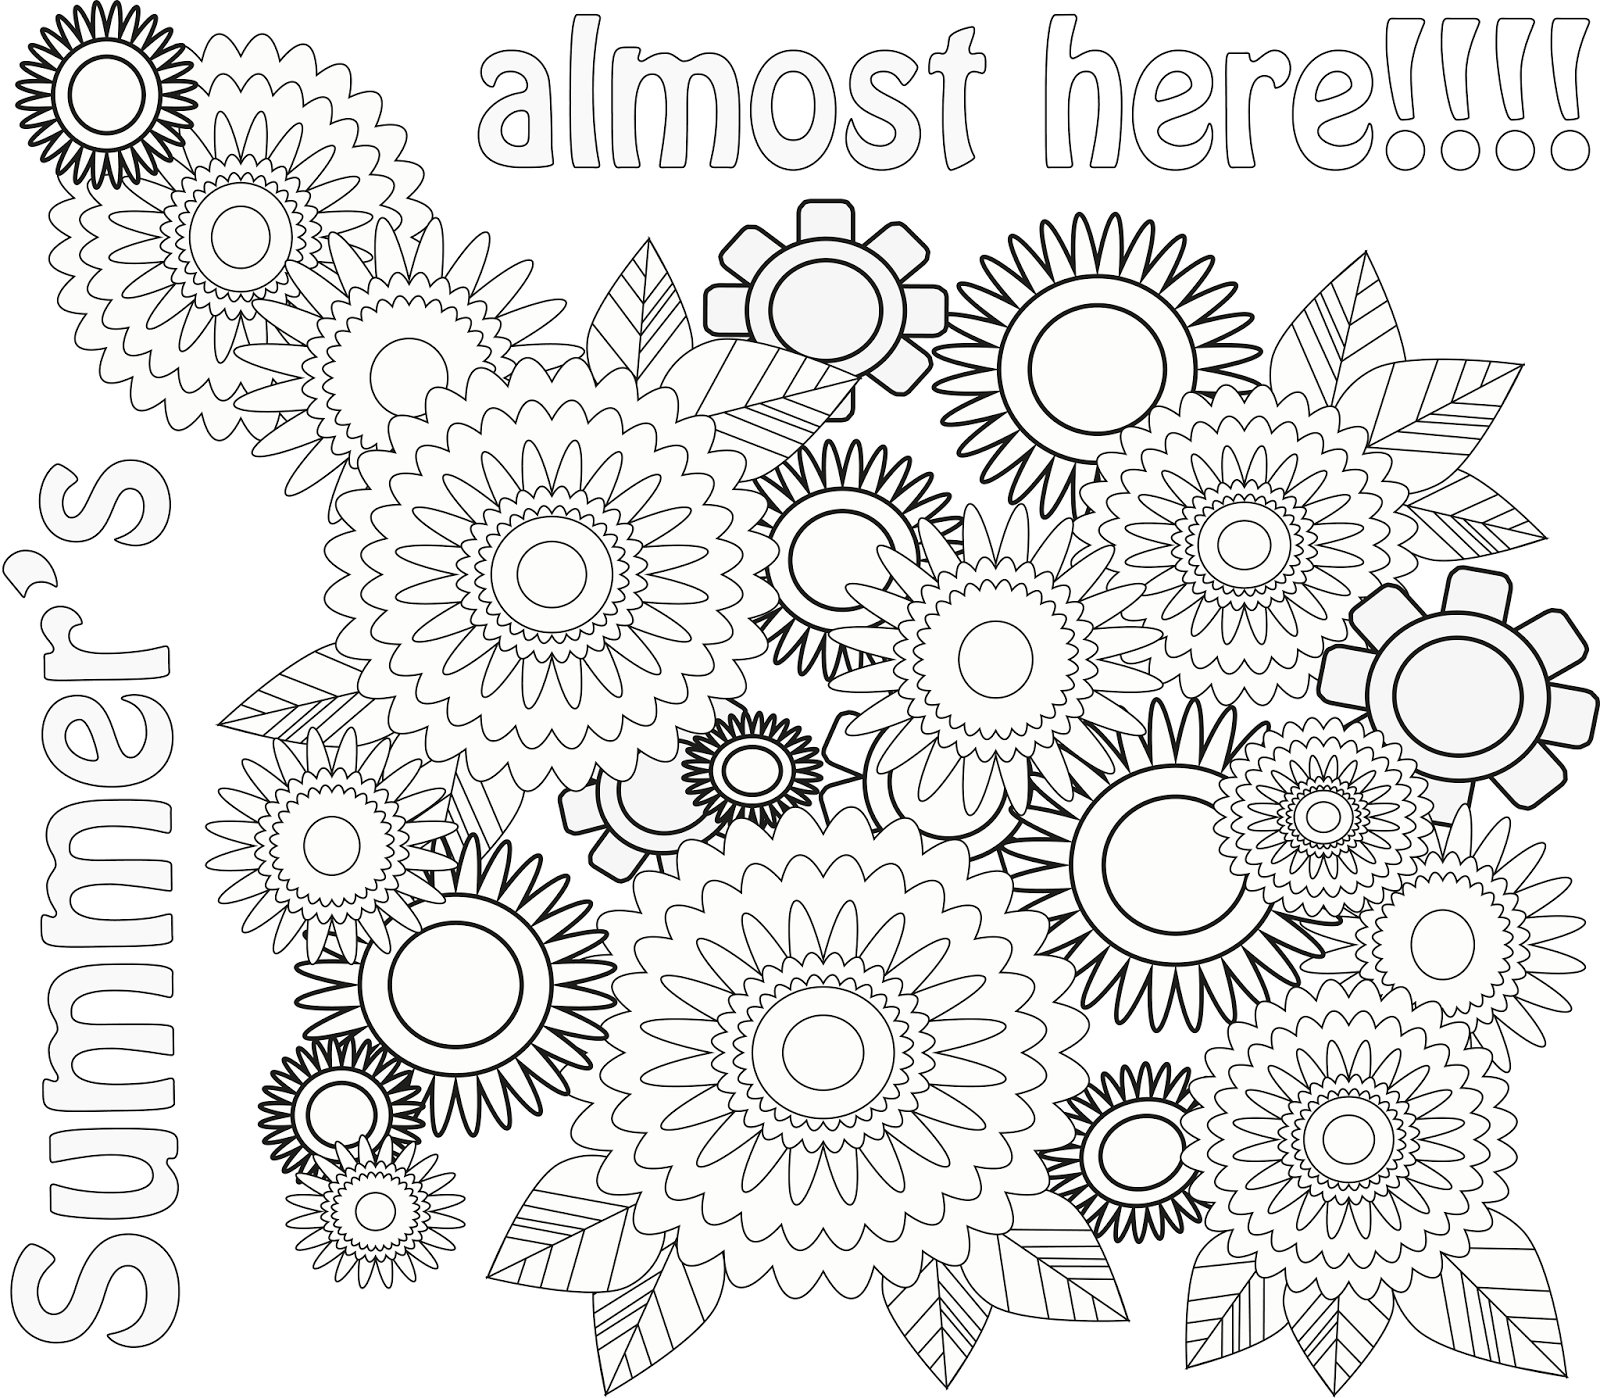 Summer is here coloring pages - And A Bonus Coloring Sheet To Celebrate Summer A Huge Thank You To Wegraphics For The Easy To Follow Tutorial On Making These Flowers